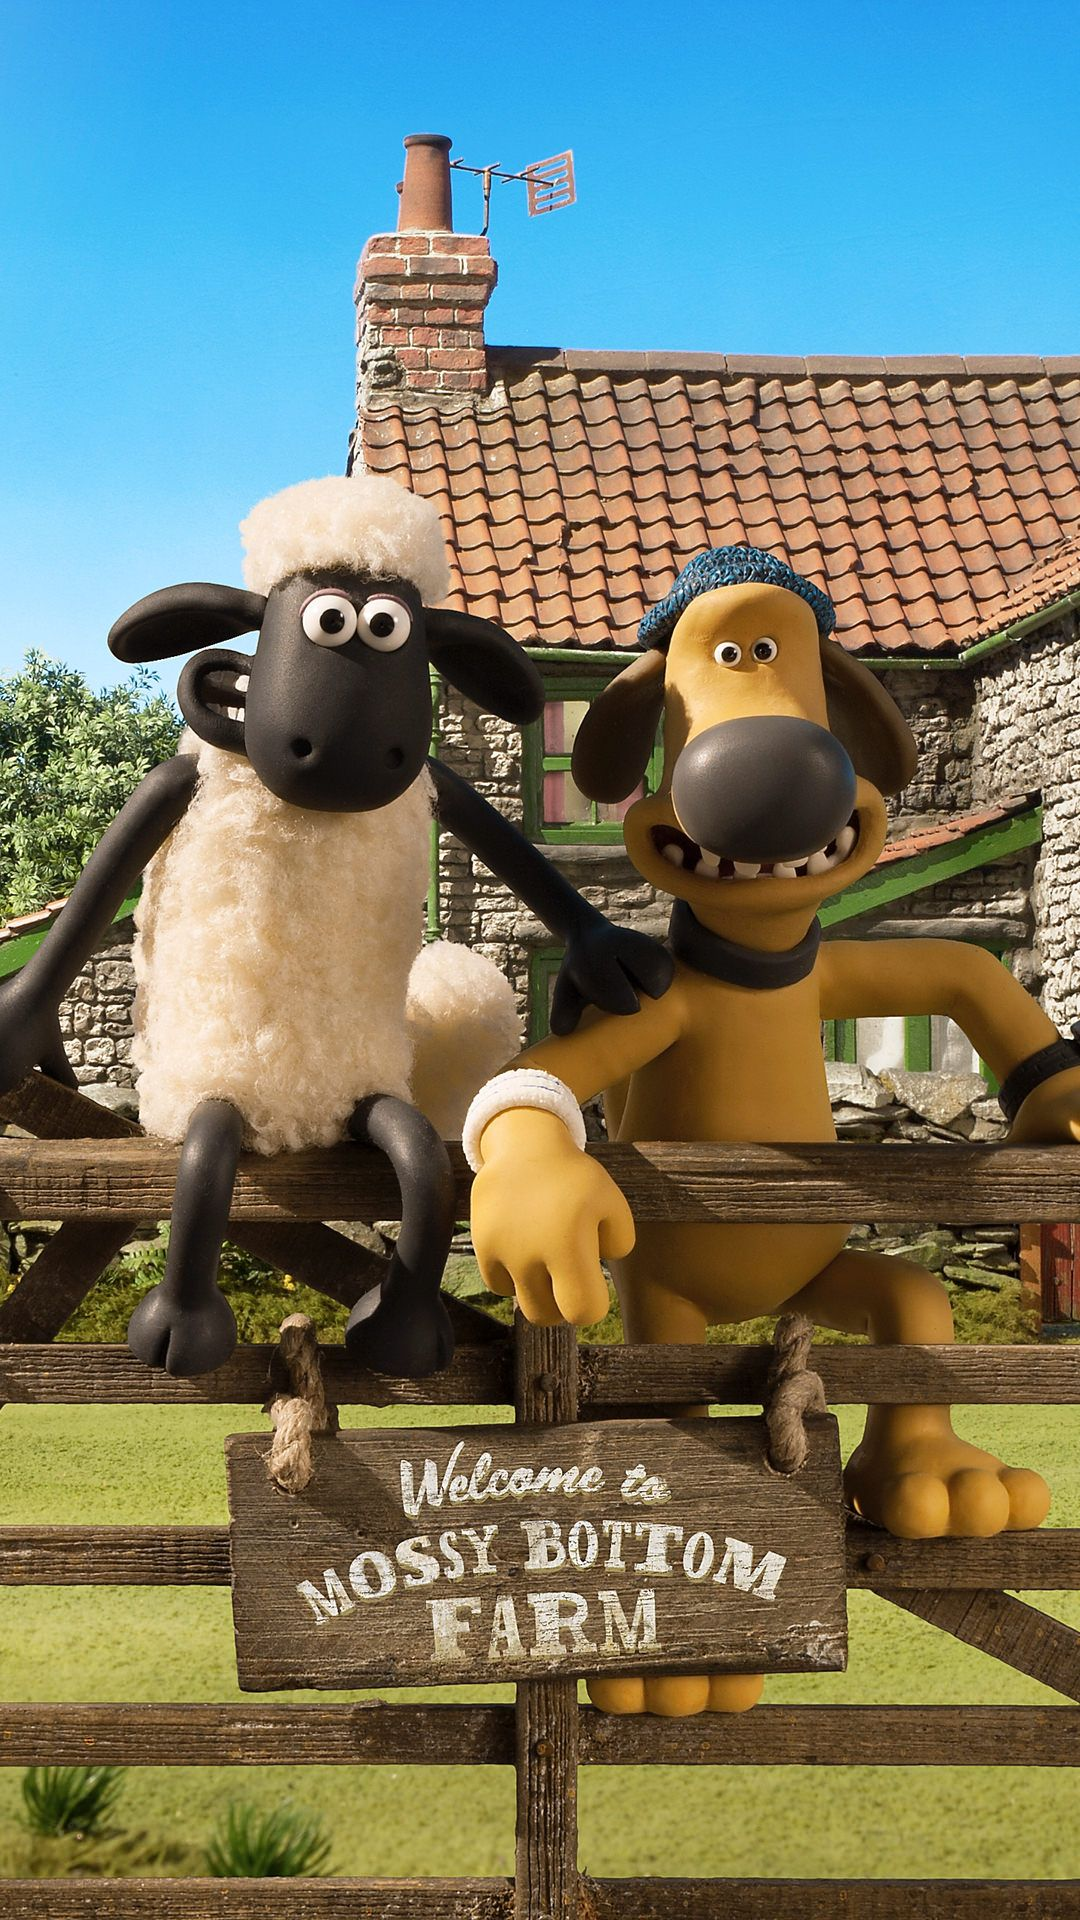 Shaun The Sheep Iphone Wallpaper ひつじのショーンのiphone壁紙